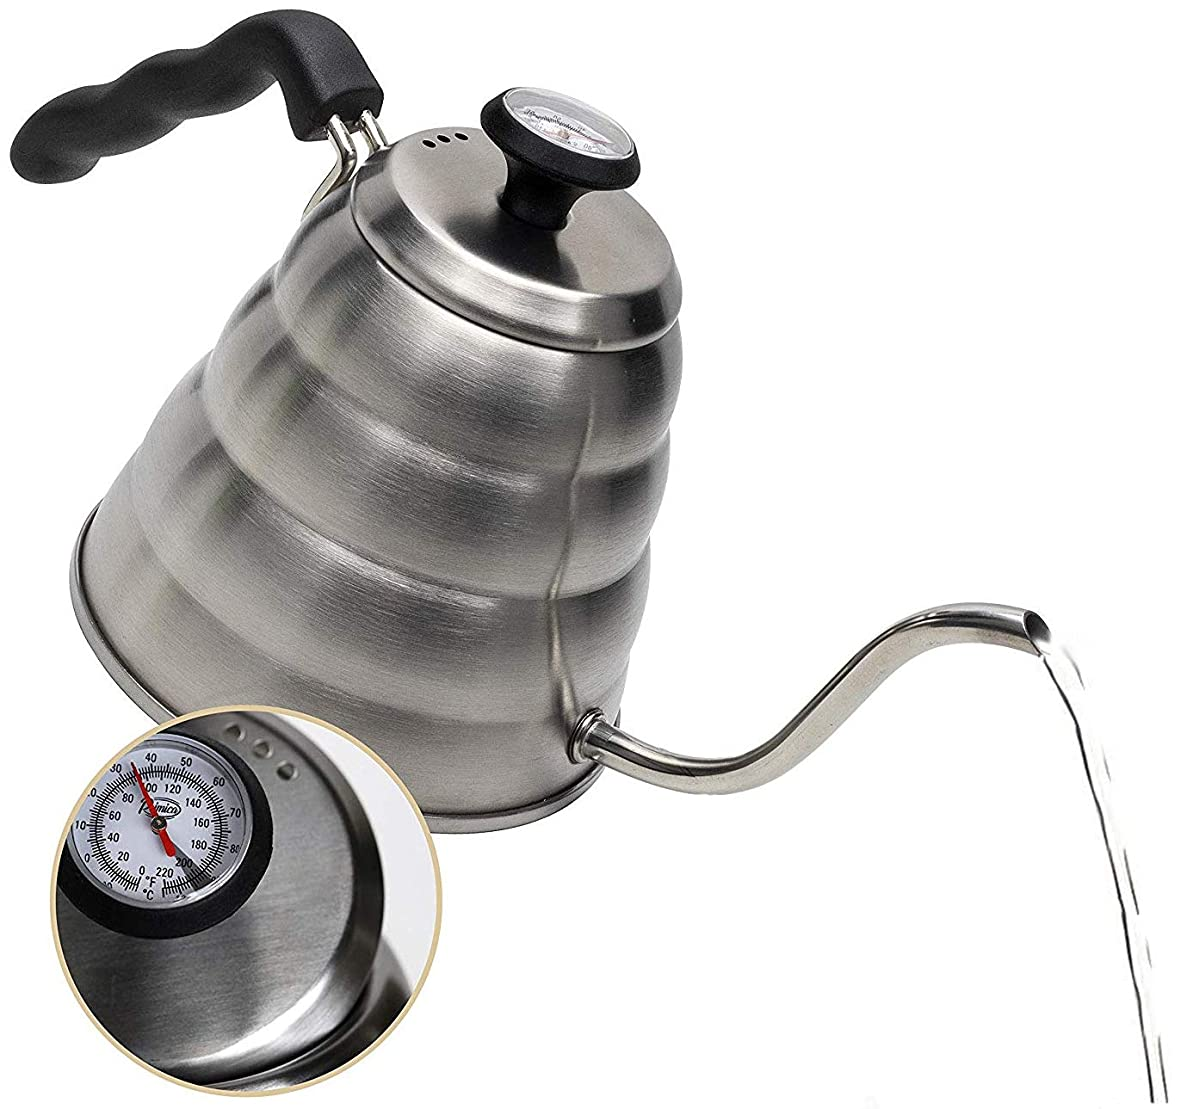 Pour Over Coffee Kettle with Outstanding Thermometer (40floz) - Gooseneck Kettle - Triple Layer Stainless Steel Bottom Works on any Heat Source for Drip Coffee and Tea